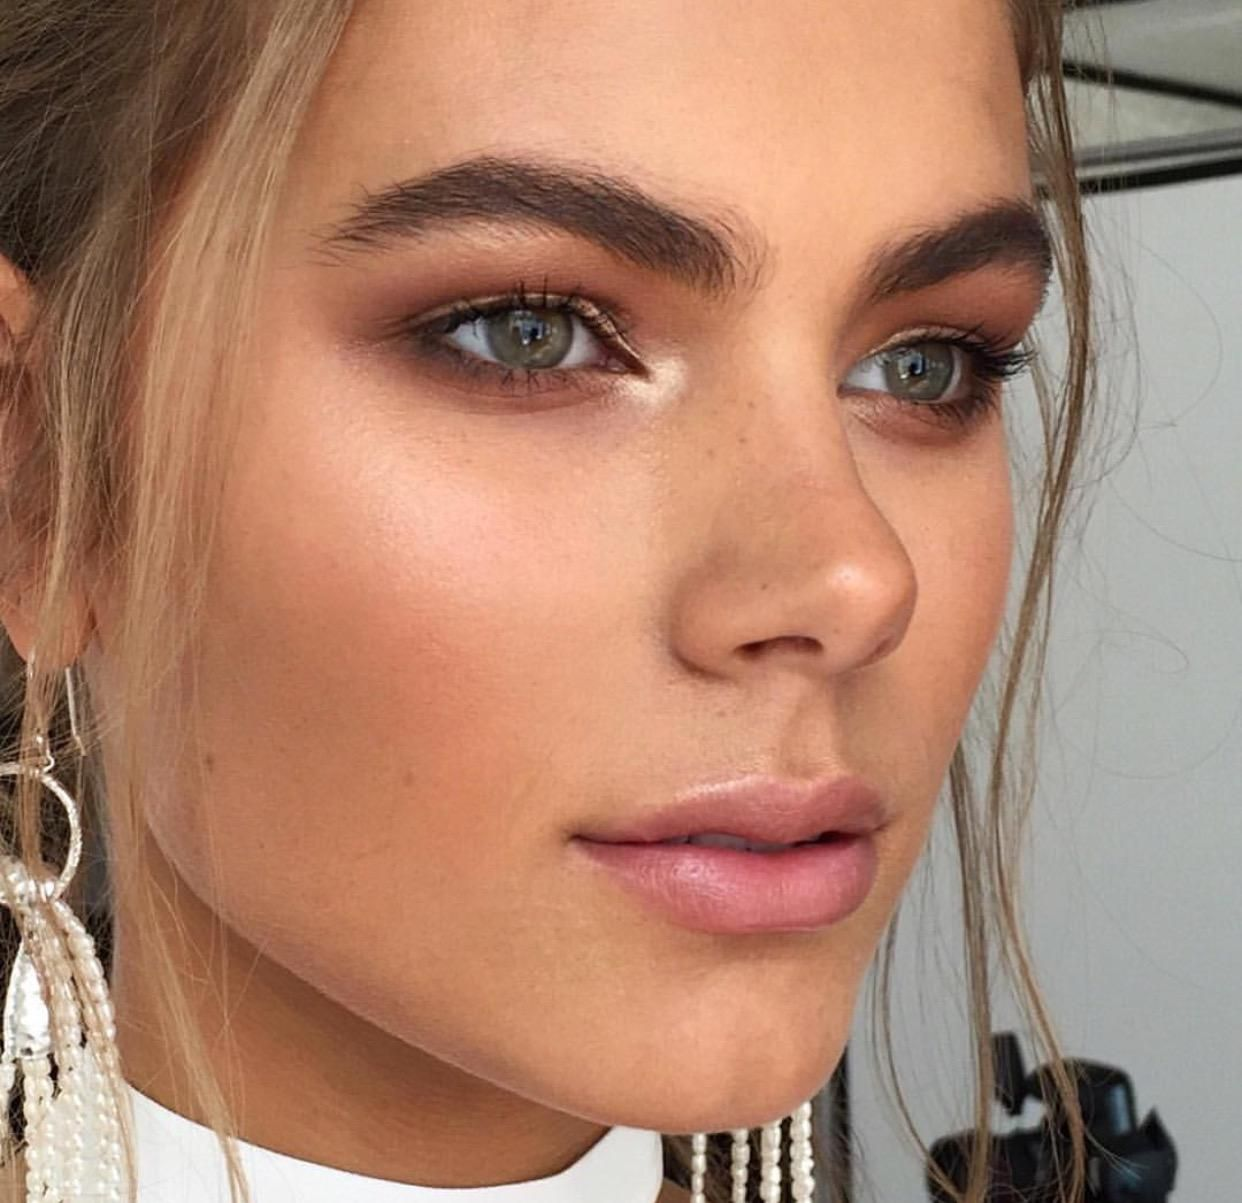 35 Perfect Natural Makeup Ideas & Trends for Everyday